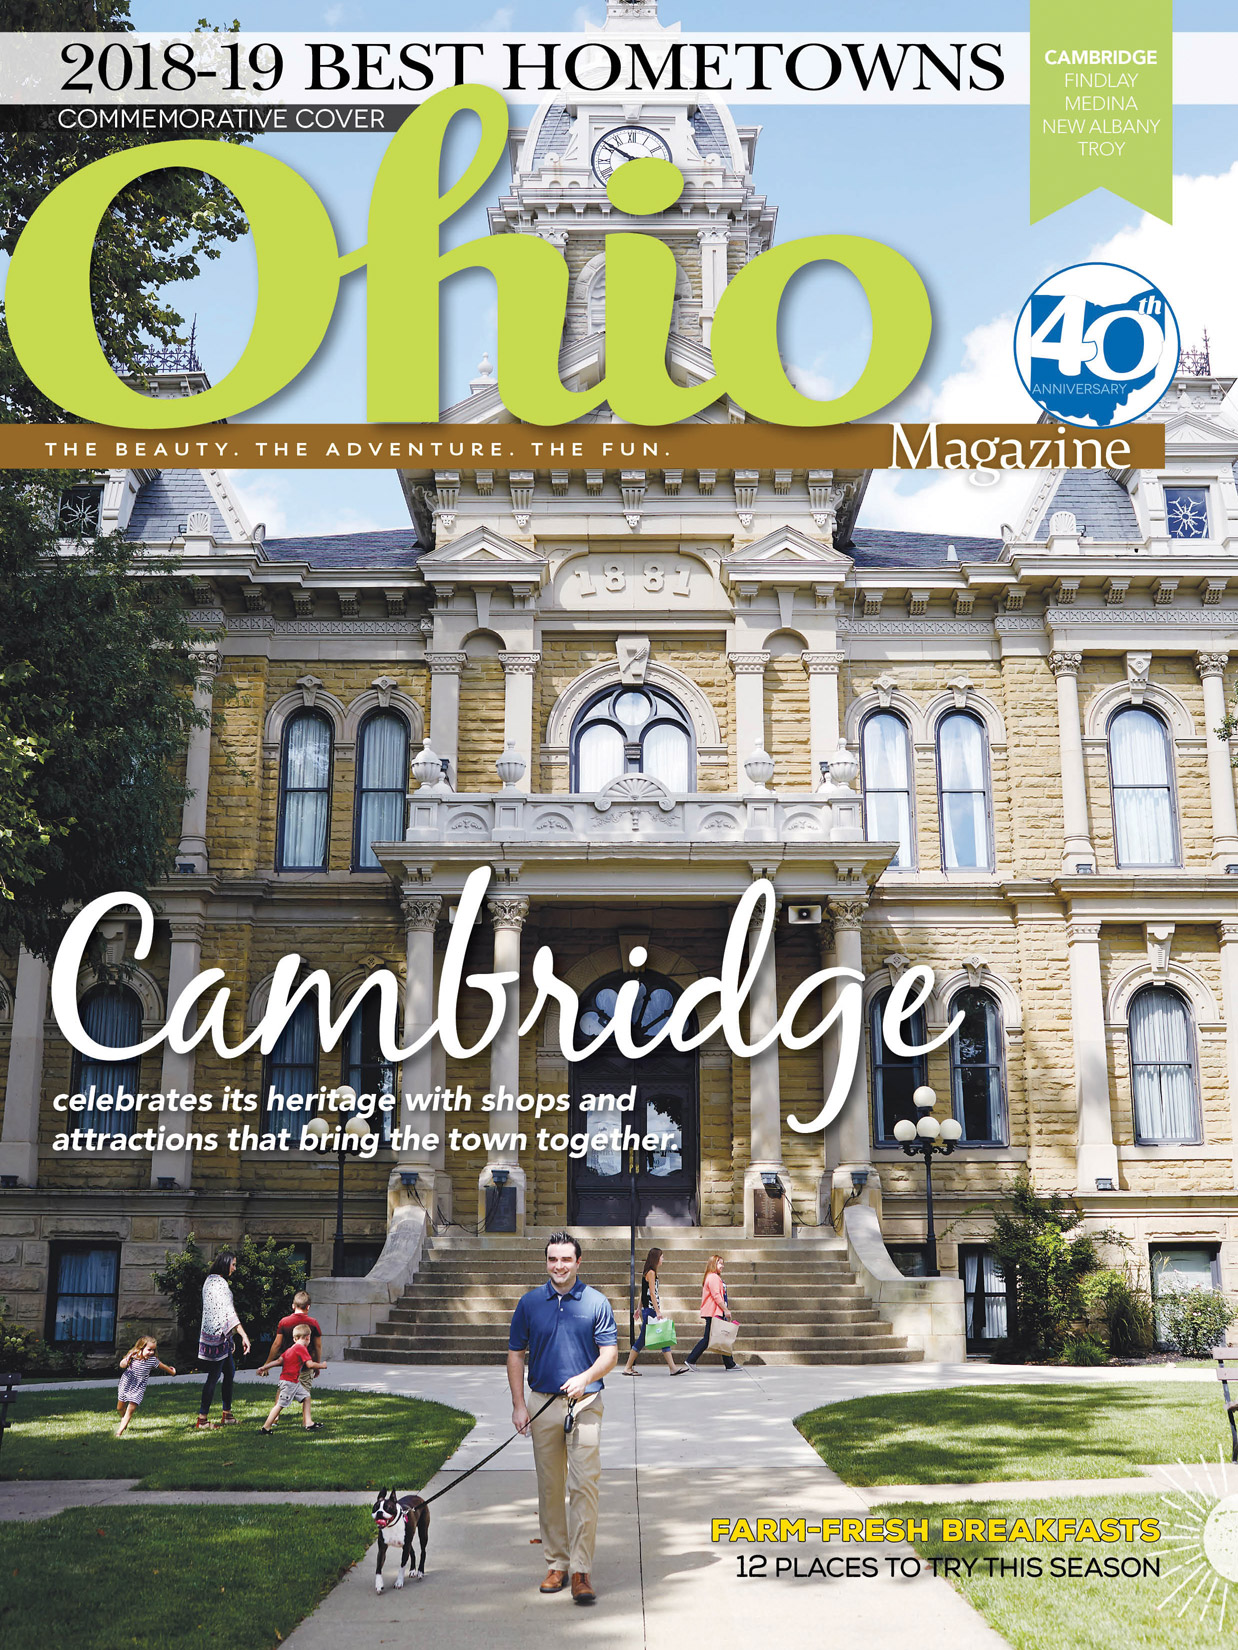 OM1118_Cambridge-Cover